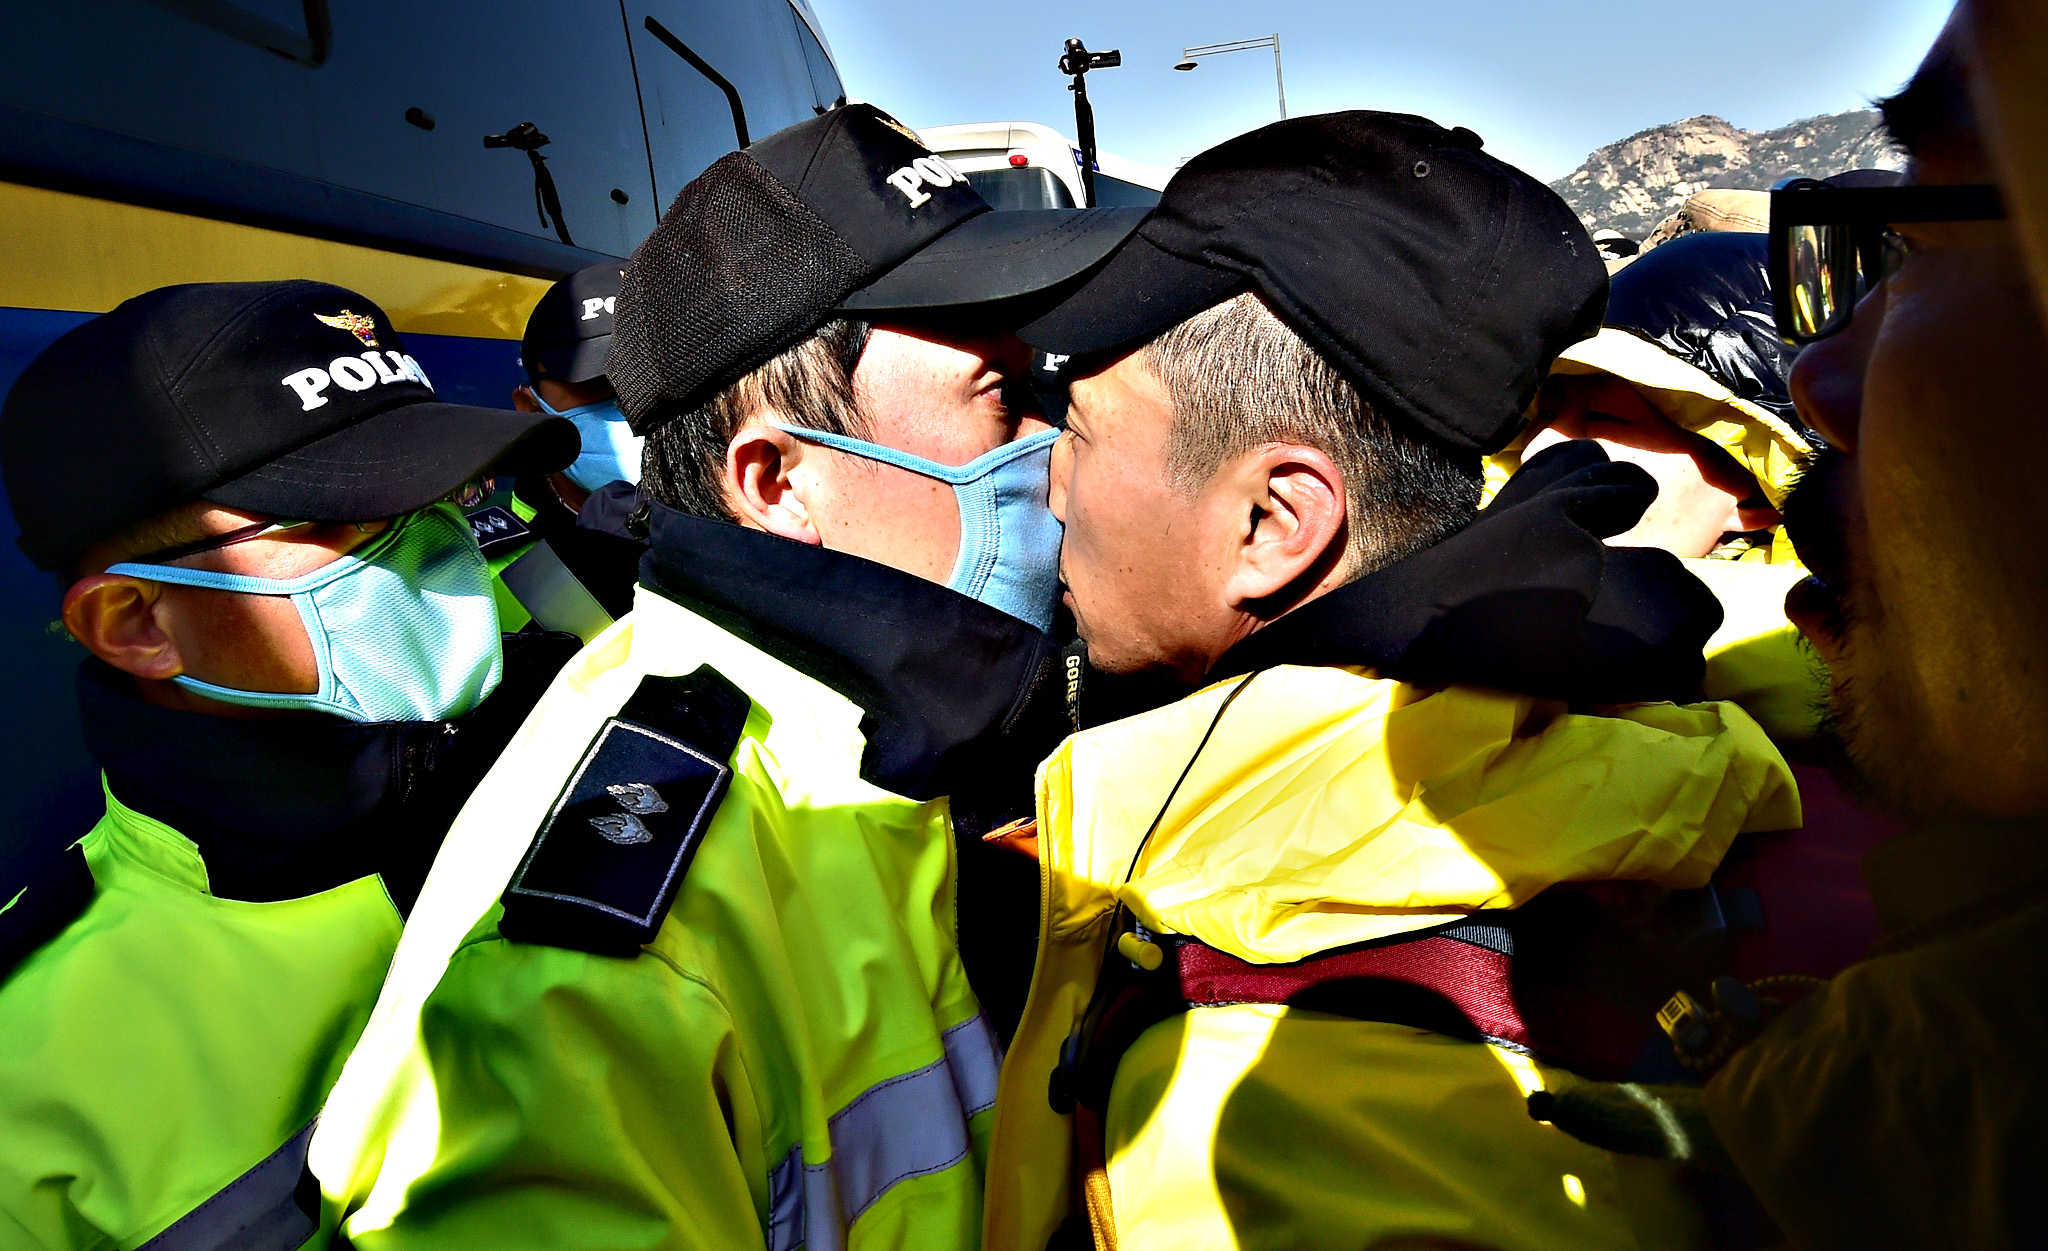 A relative of the victims of South Korea's Sewol ferry disaster is in a nose-to-nose stand-off with a policeman during an anti-government protest near the presidential residence in Seoul on April 17, 2015. Dozens of people continued their protests overnight after thousands of mourners rallied to mark the first anniversary of the disaster that claimed 304 lives.